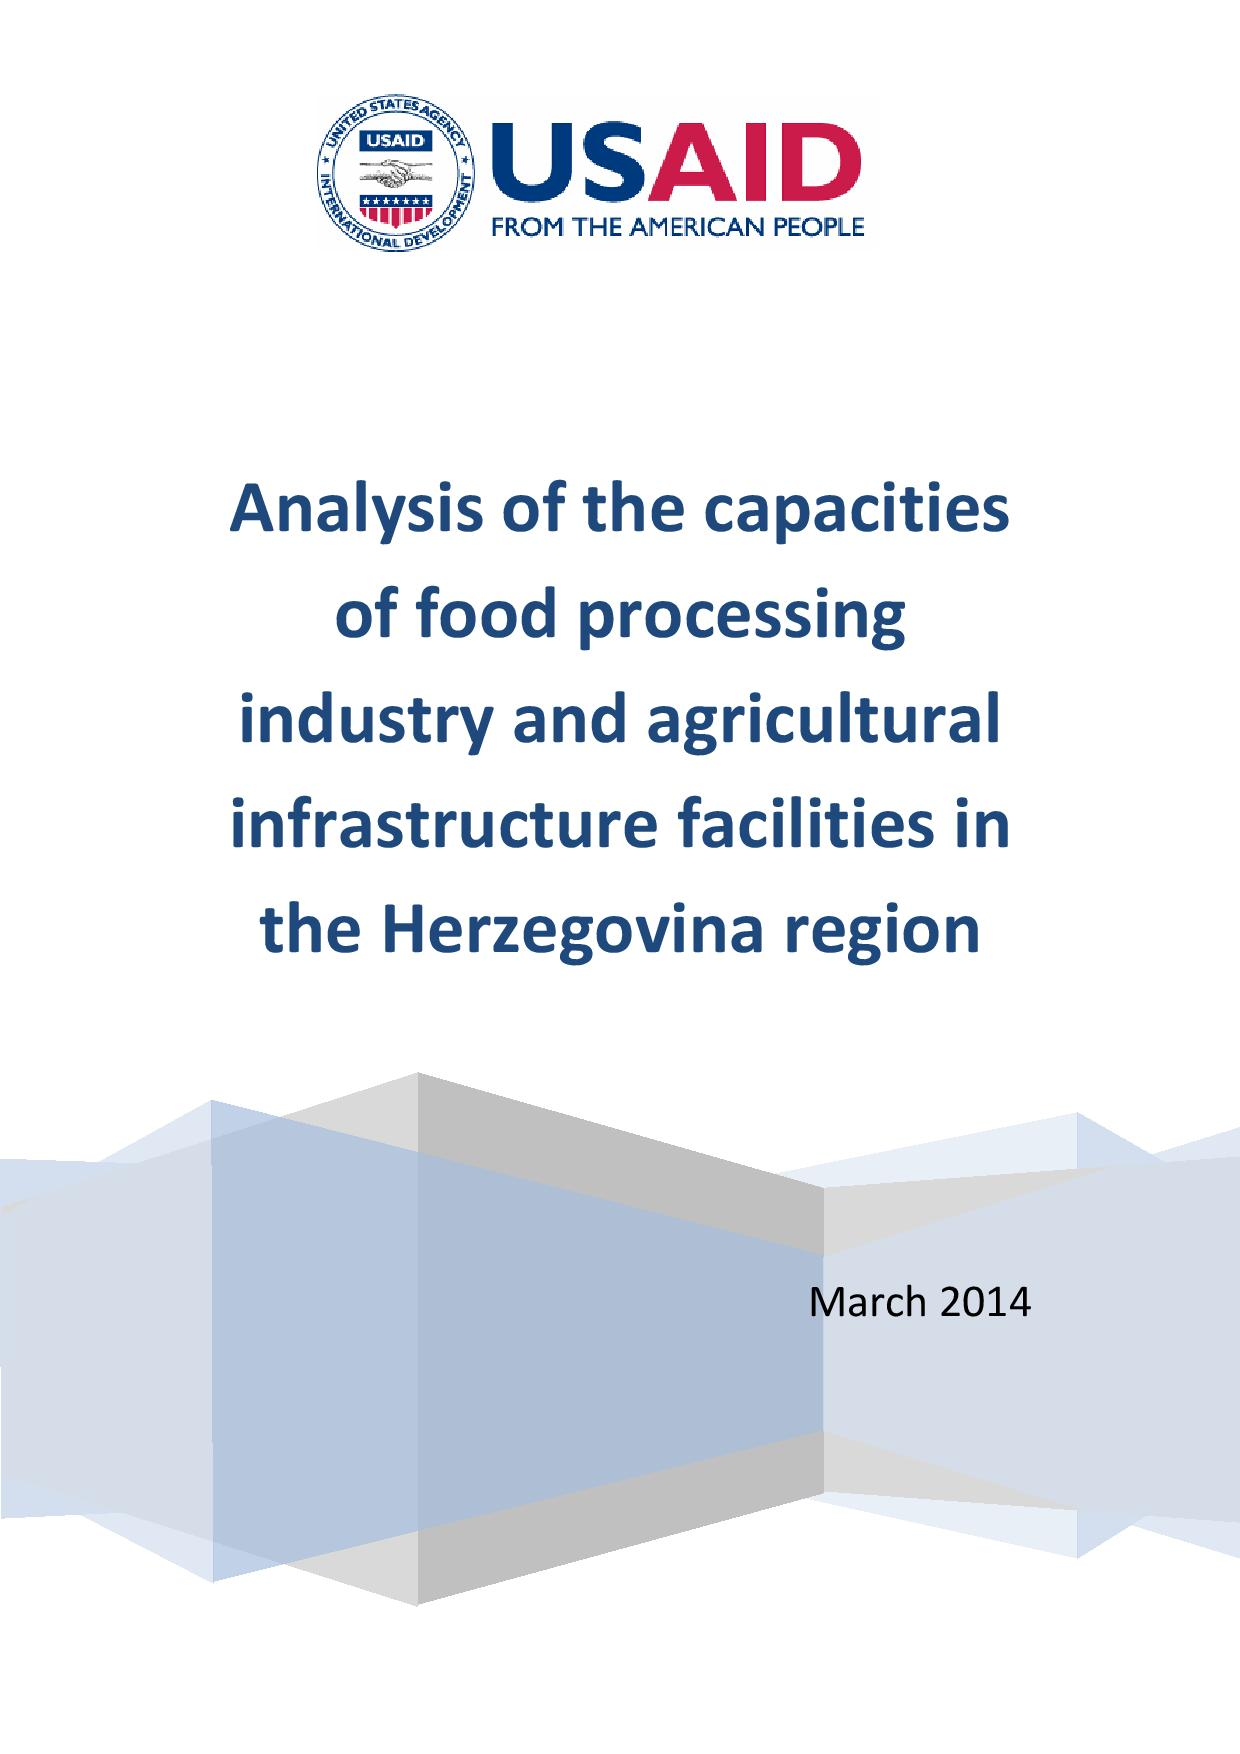 Analysis_of_the_capacities_of_food_processing_industry_and_agricultural_infrastructure_facilities_in_the_Herzegovina_region-page-001